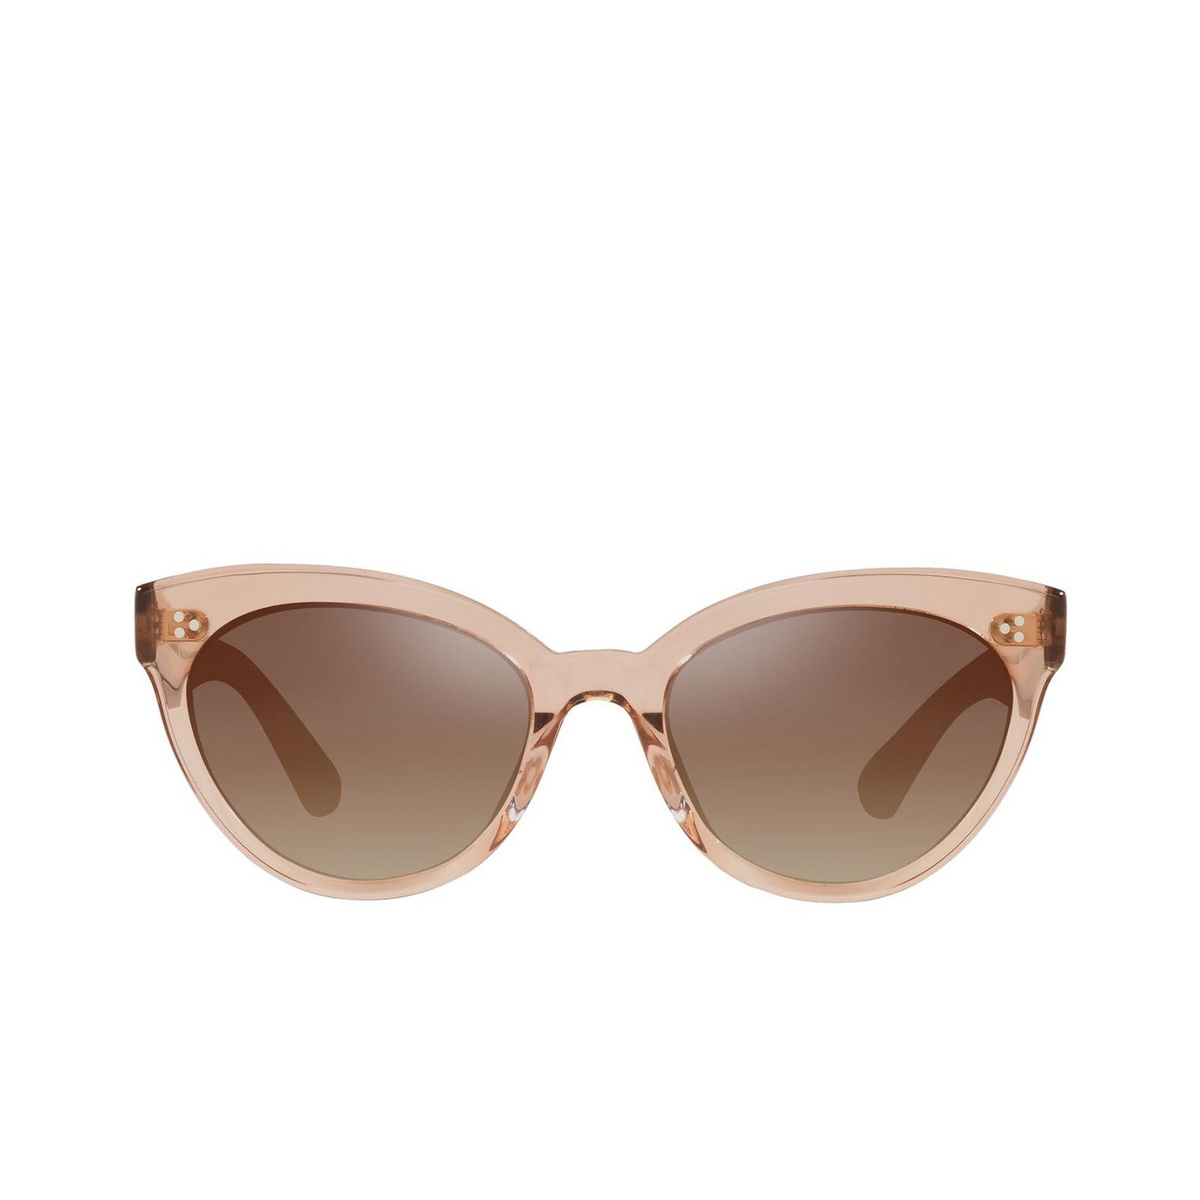 Oliver Peoples® Cat-eye Sunglasses: Roella OV5355SU color Pink 1471Q1 - front view.